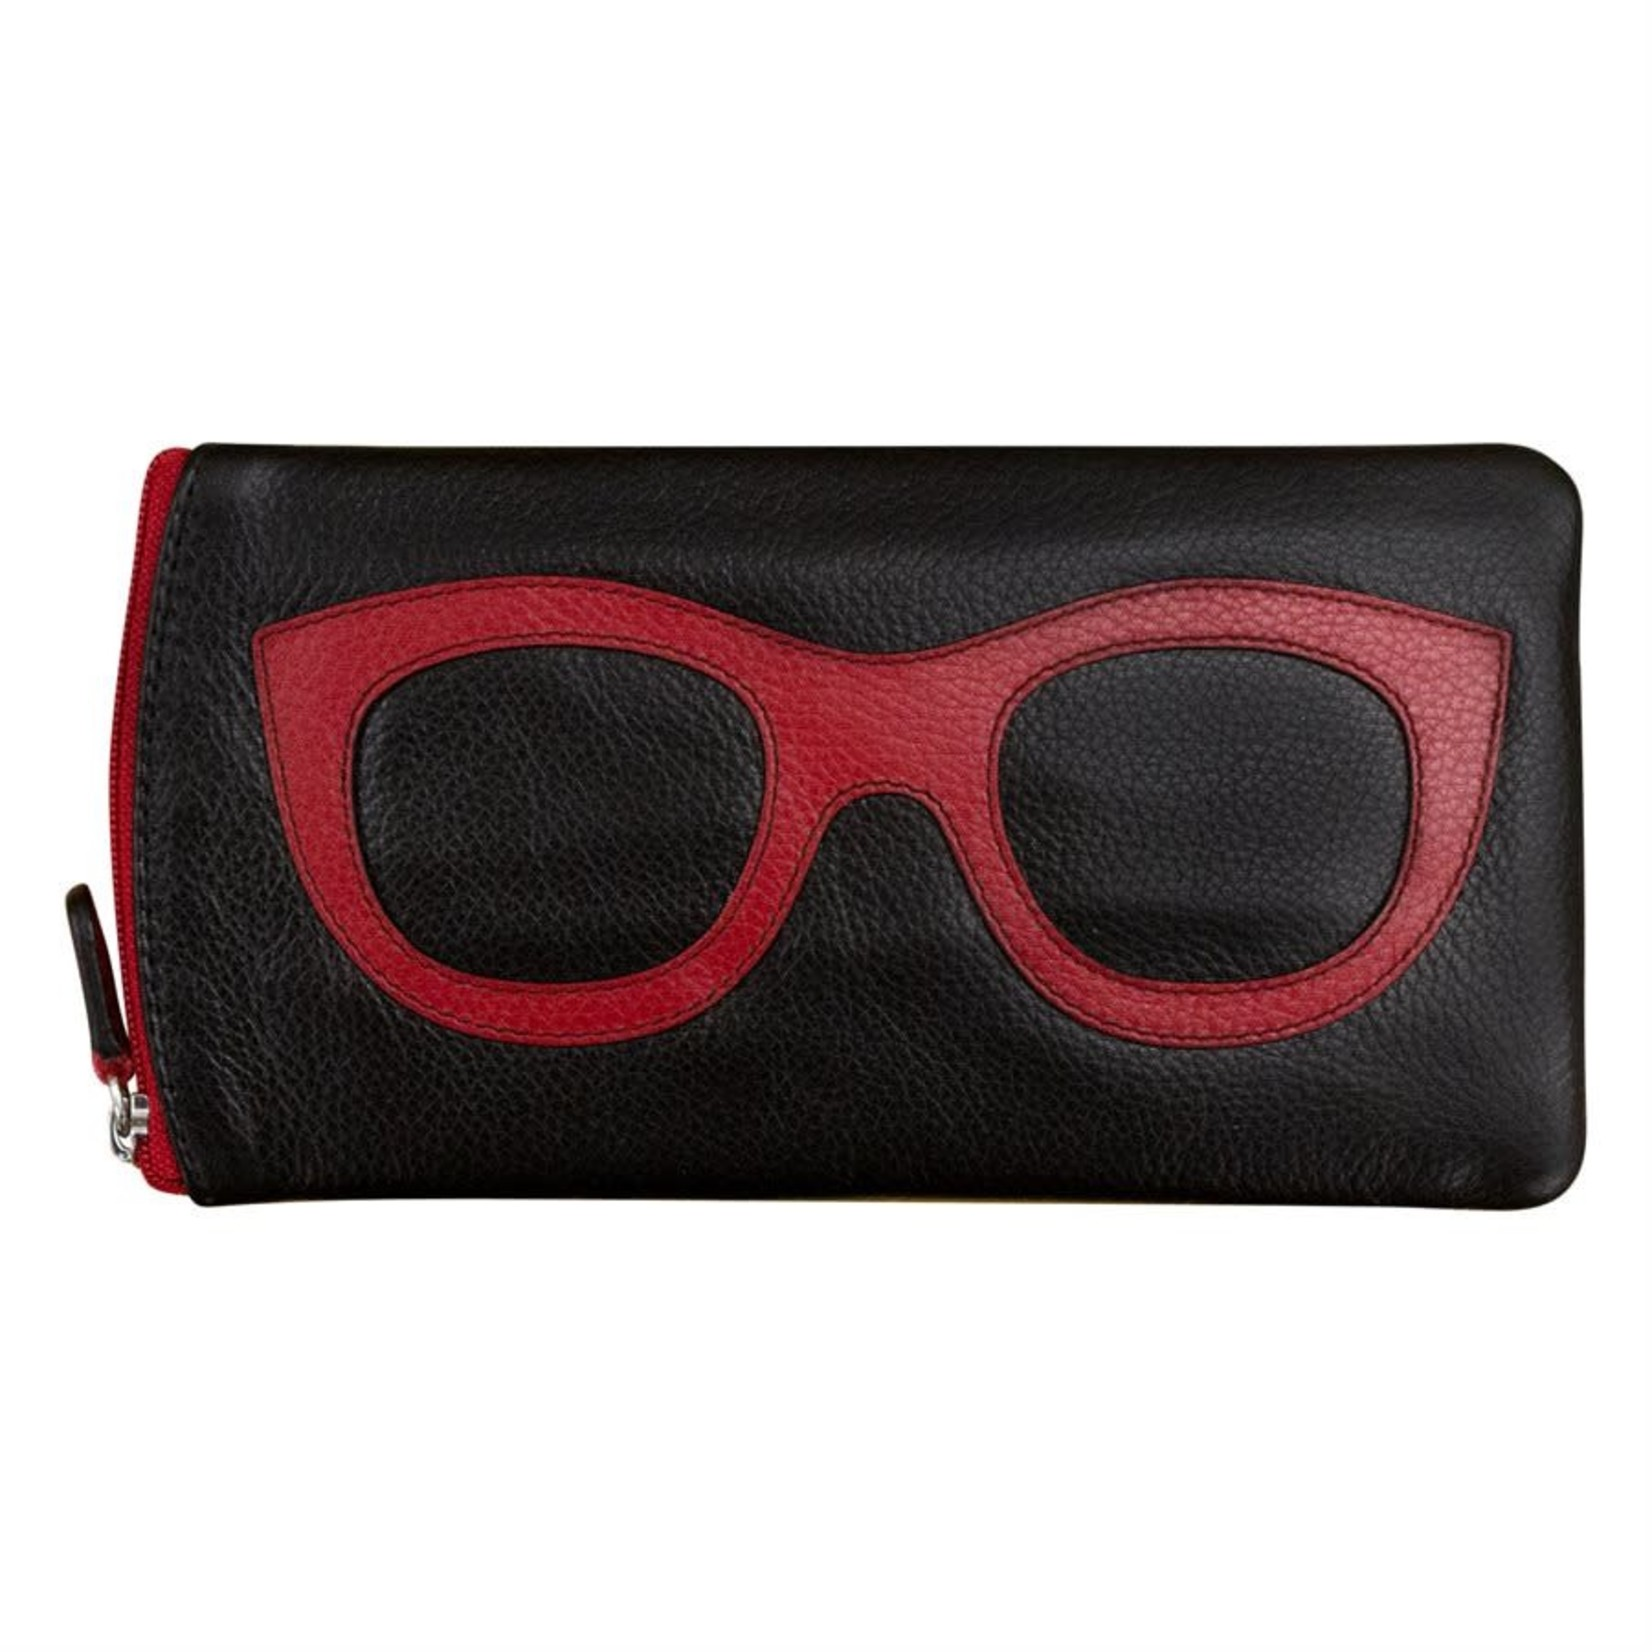 Leather Handbags and Accessories 6462 Black/Red - Leather Eyeglass Case